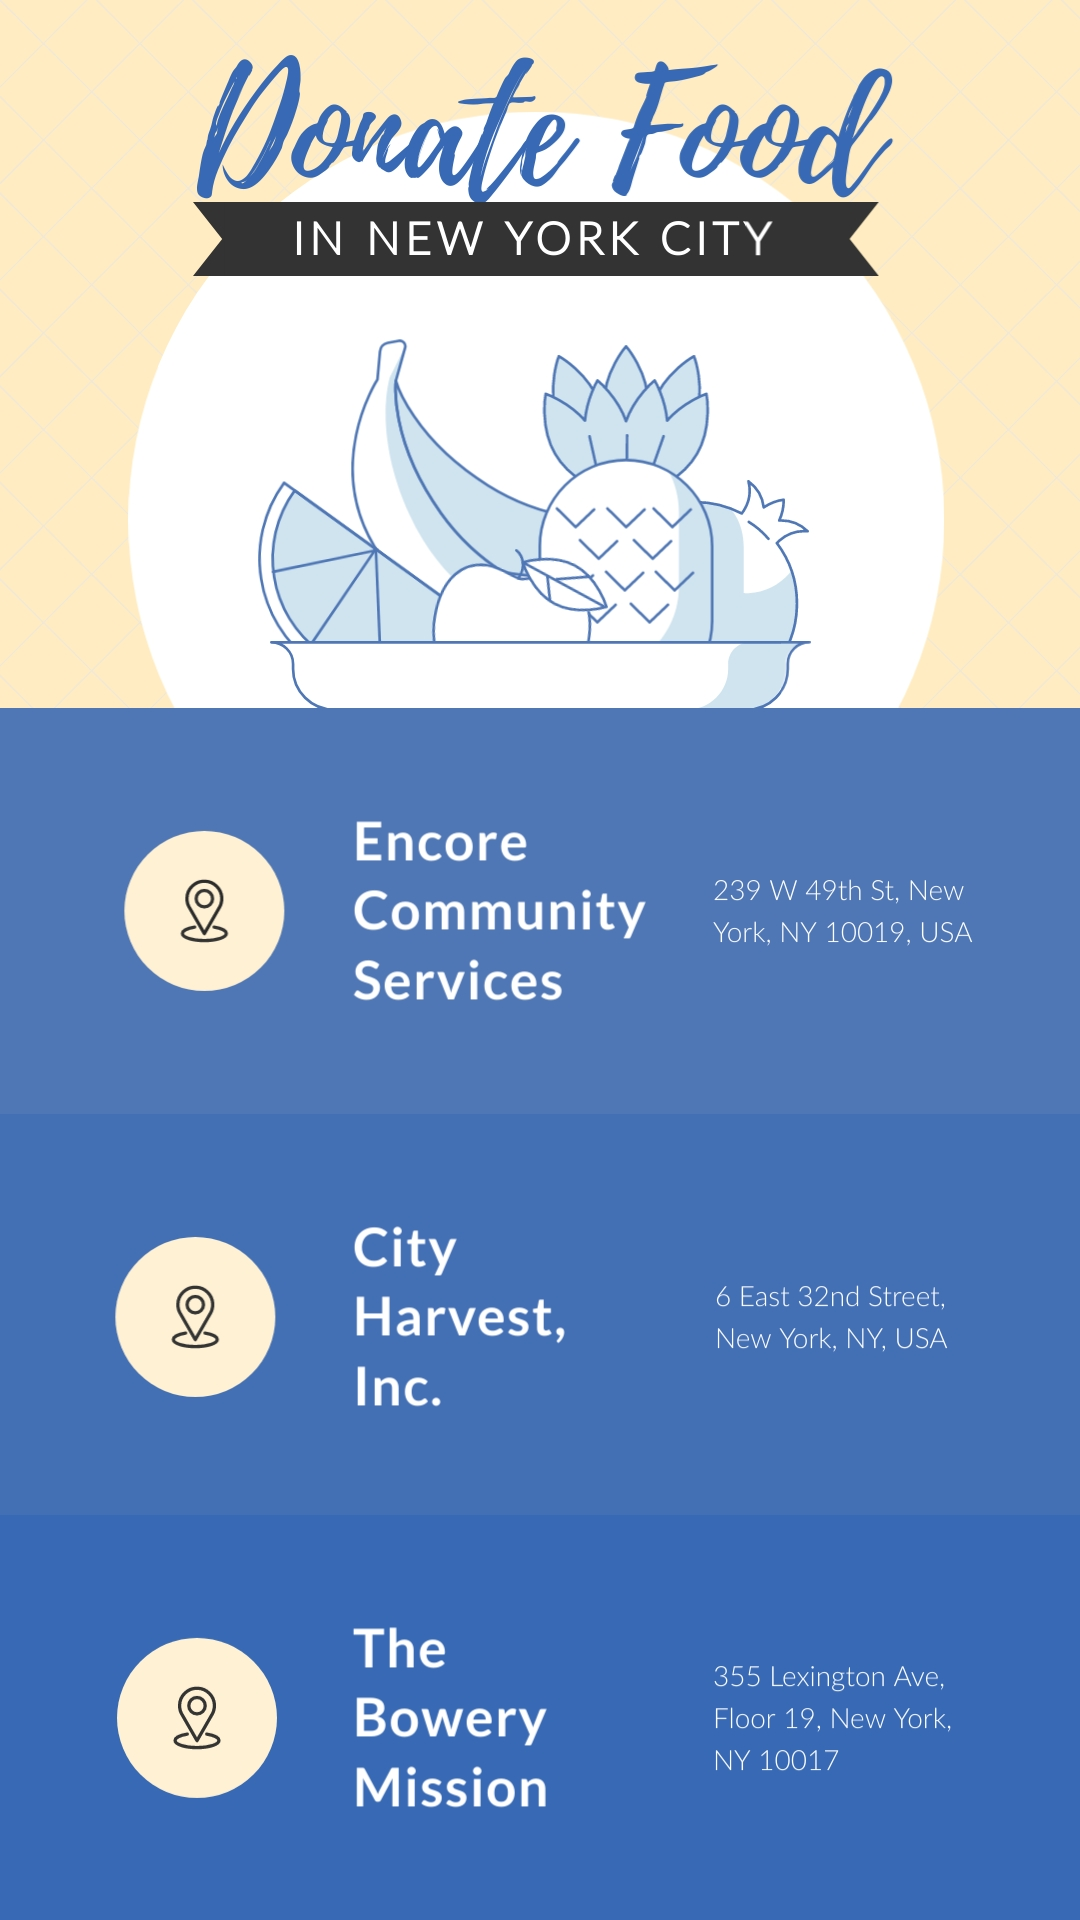 Donate Food COVID19 NYC Animated Vertical Template